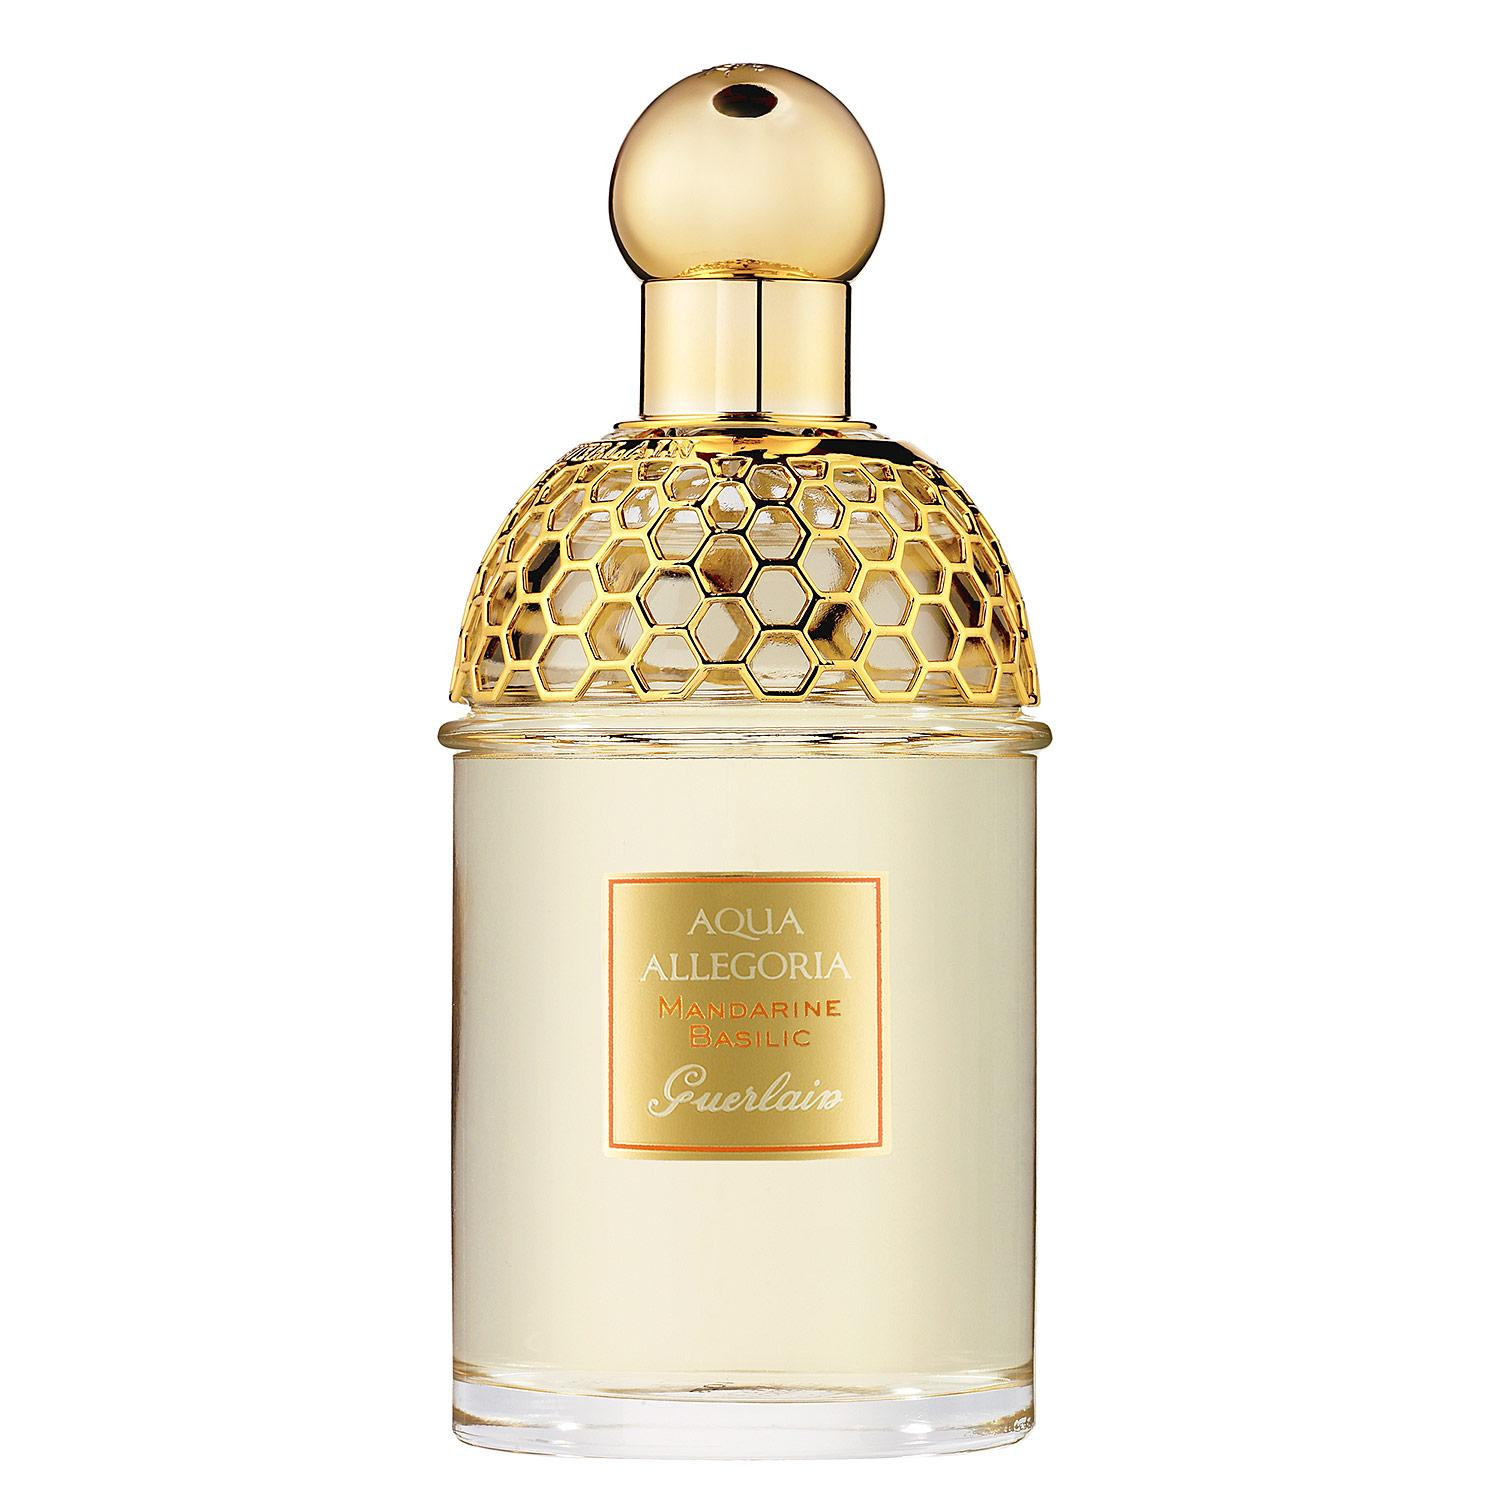 guerlain aqua allegoria mandarine basilic questions and reviews. Black Bedroom Furniture Sets. Home Design Ideas